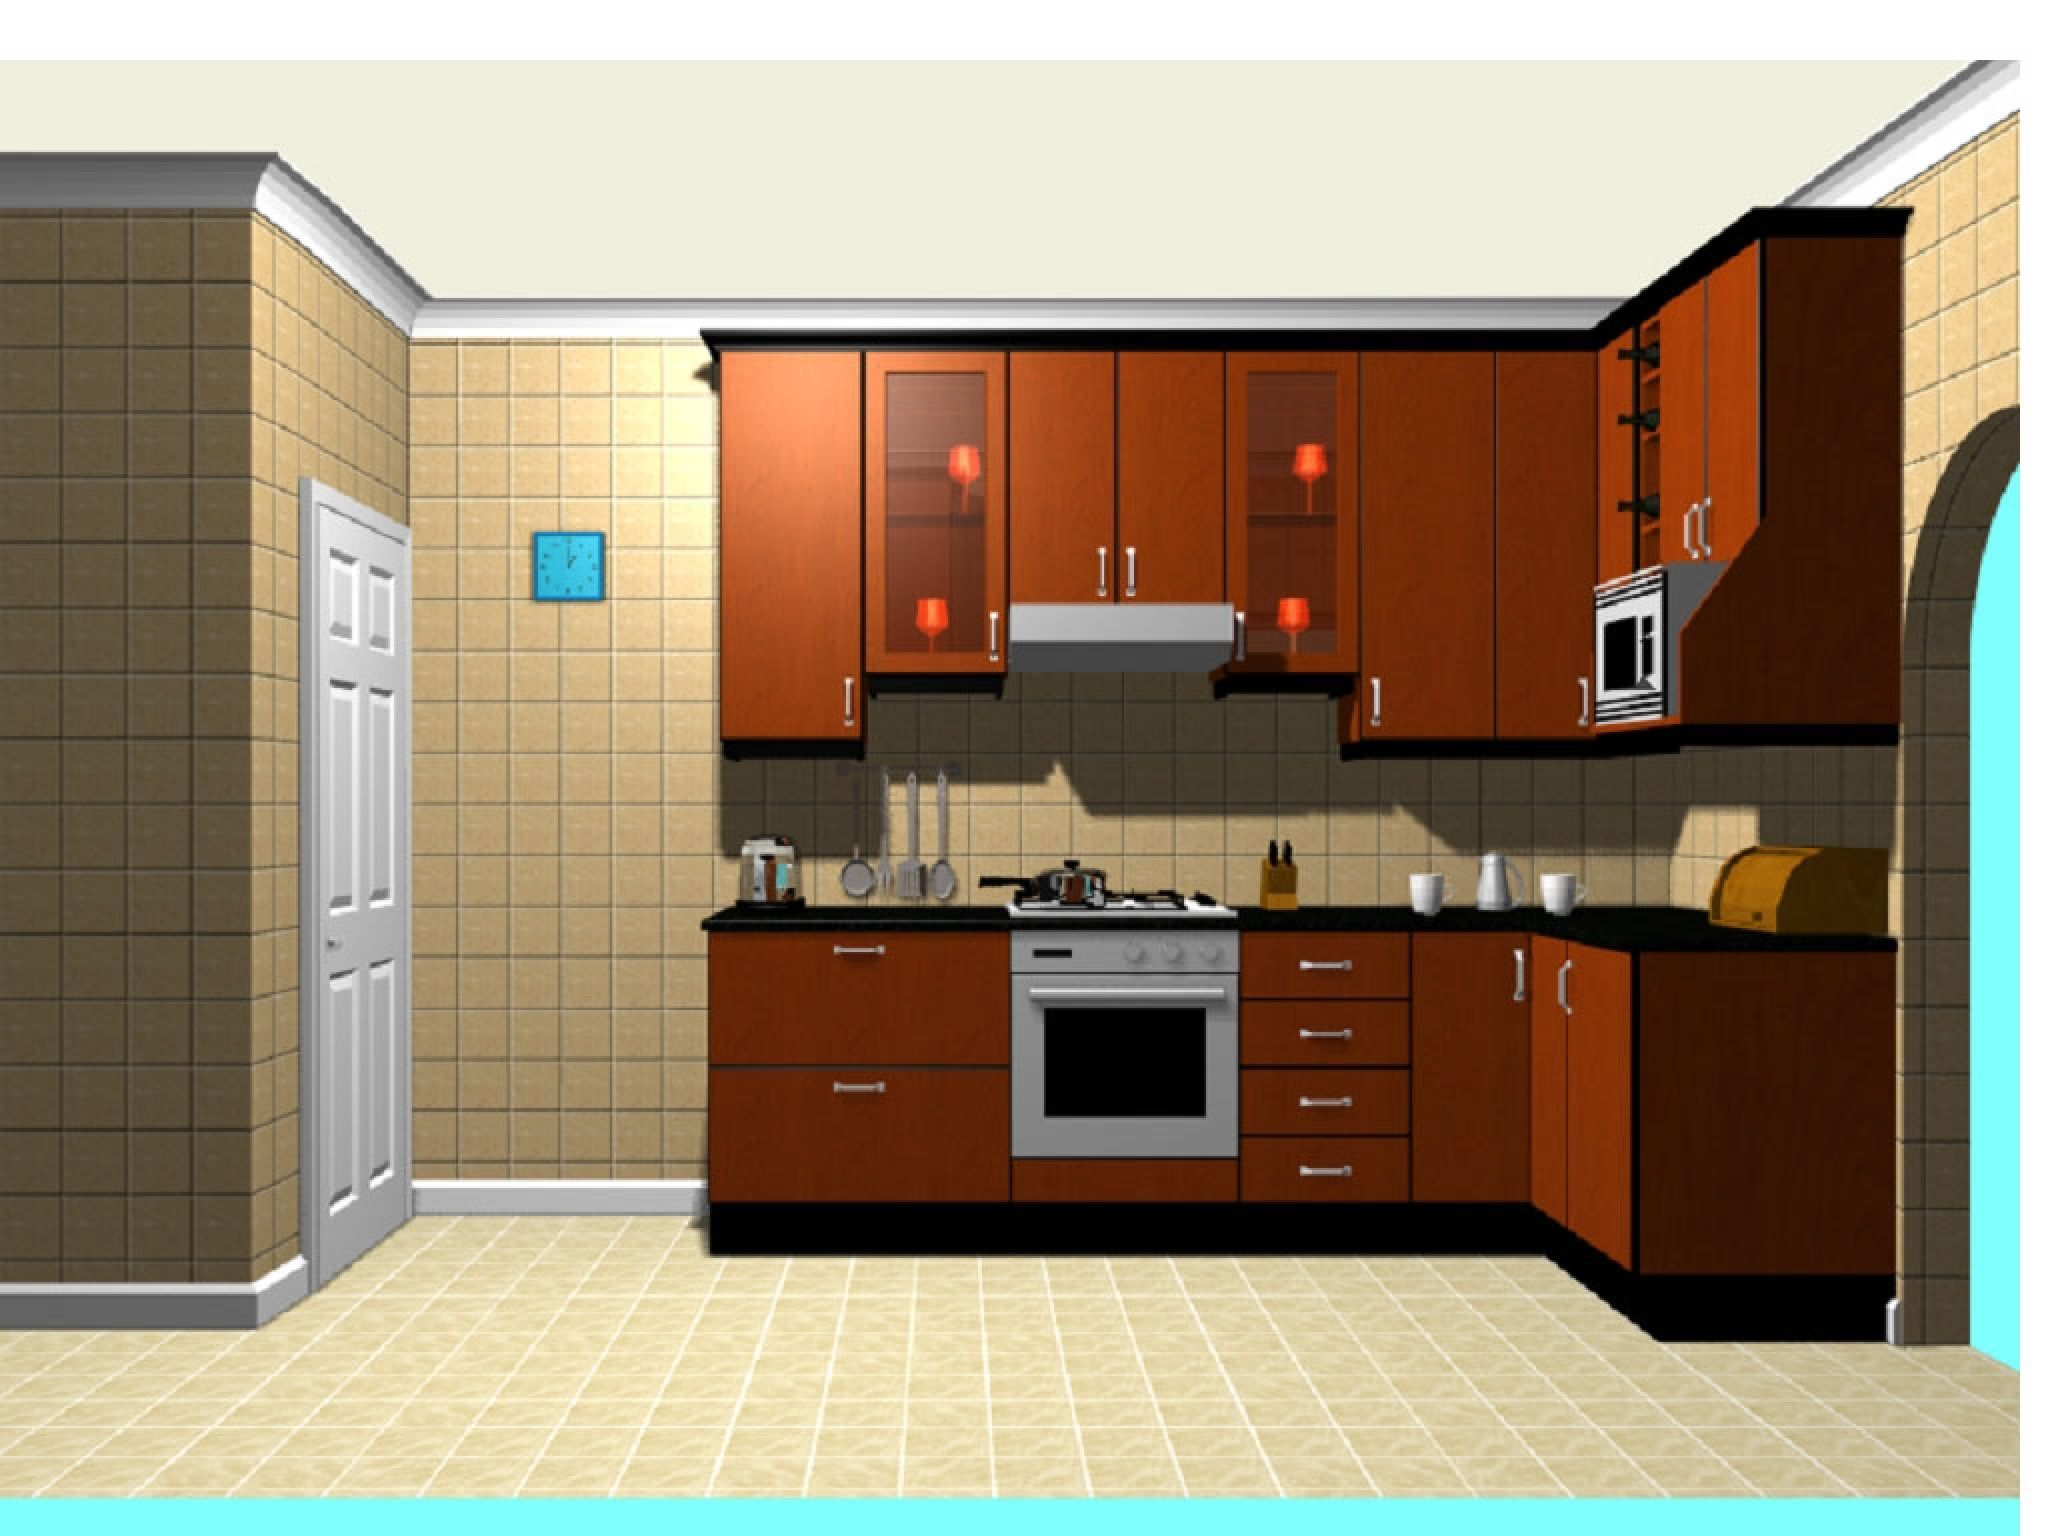 kitchen cabinet layout planner kitchen 3d ikea kitchen cabinet layout planner trash can ideas check more at http